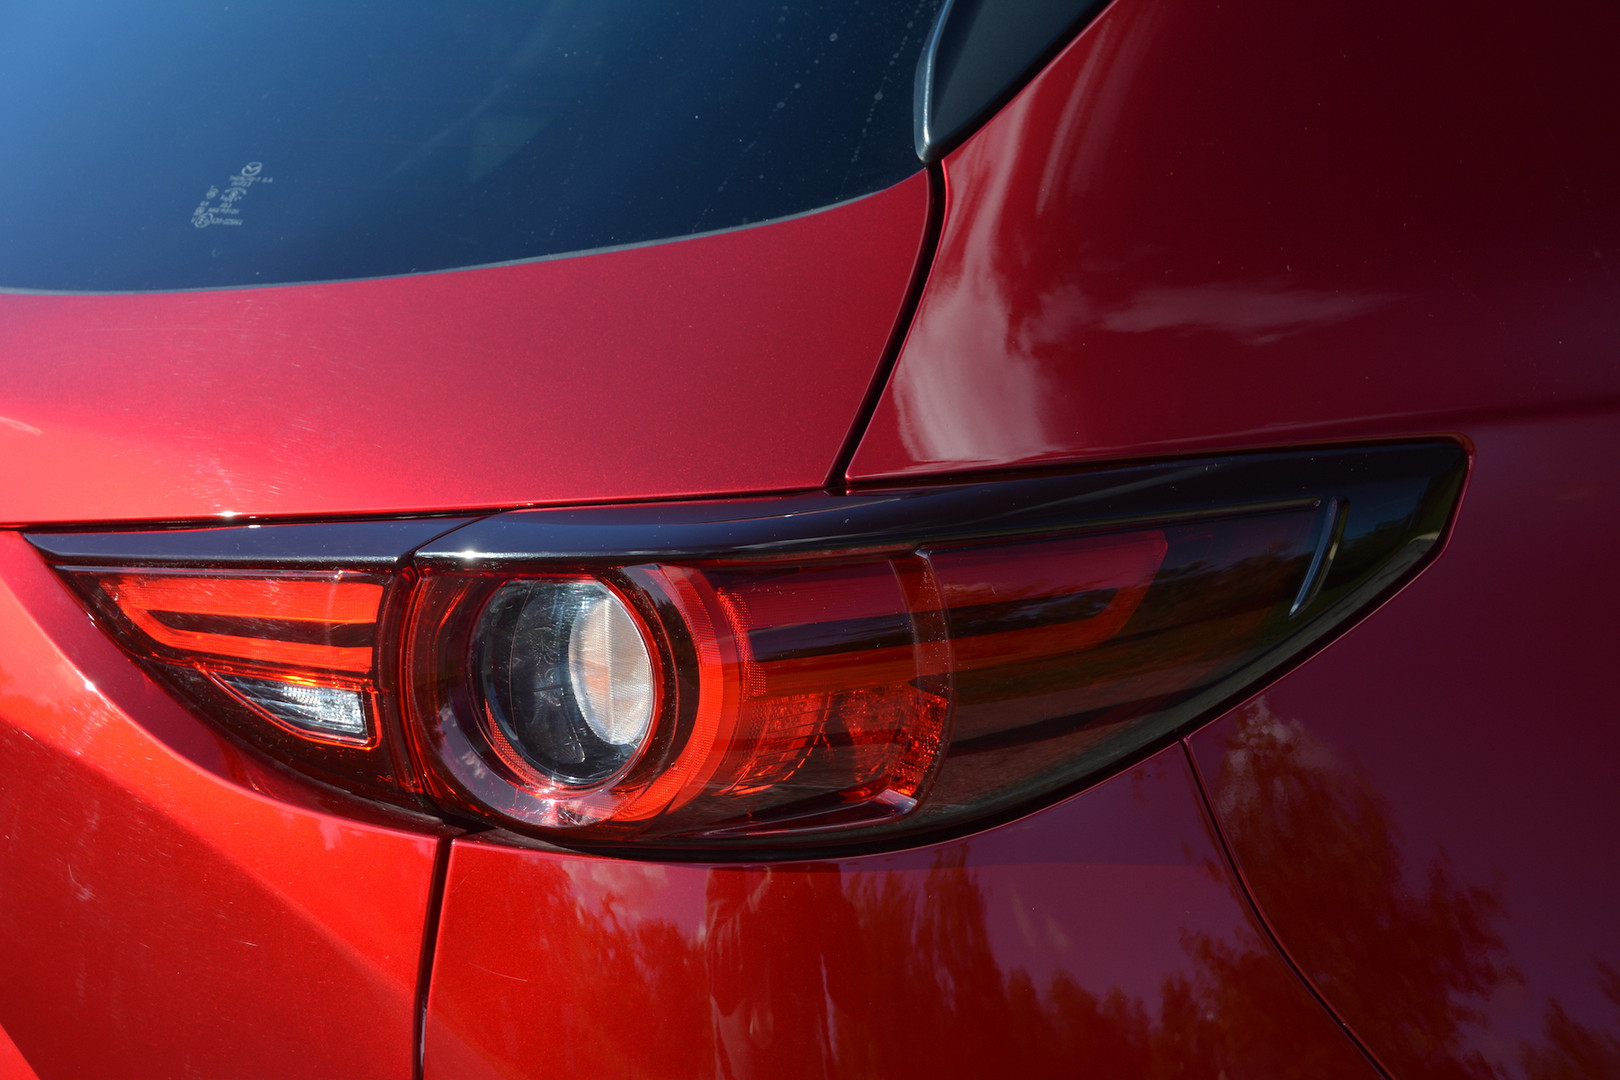 2019 Mazda CX5 Rear Lights